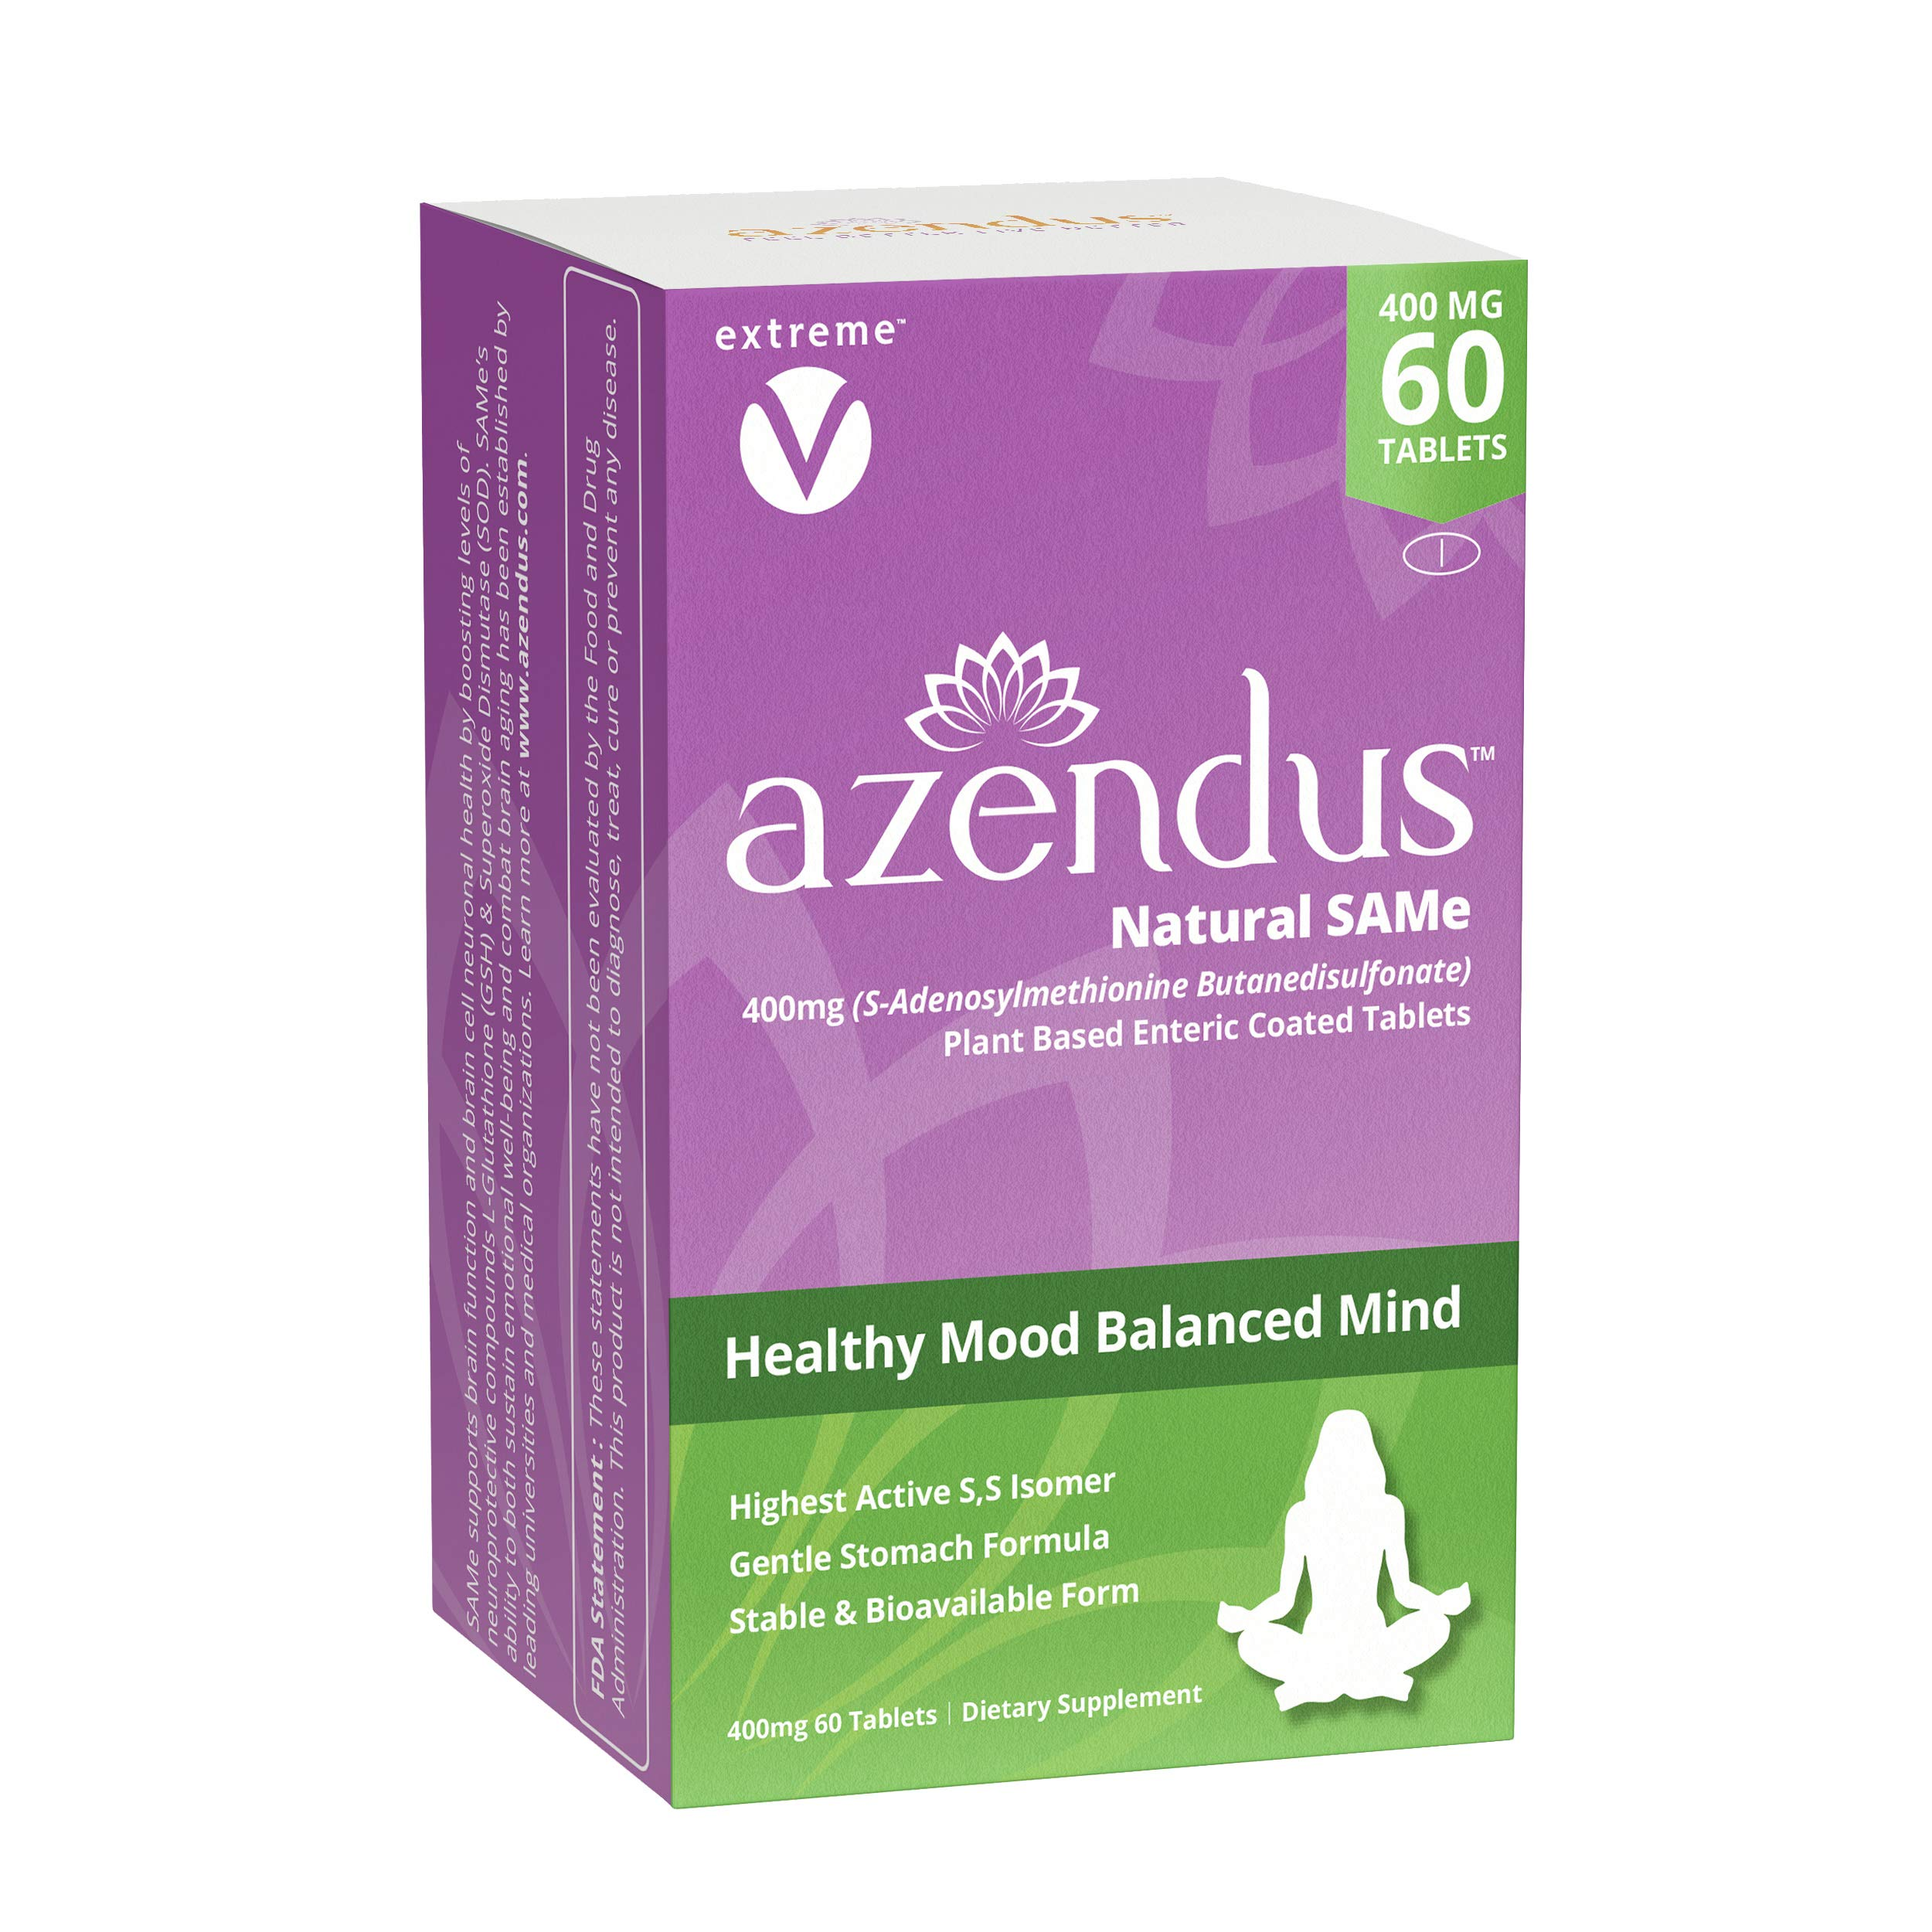 Azendus SAM-e Mood Support 400mg, 60 Count, Same Butanedisulfonate Fiber Enteric Coated Tablets, Physician Trusted, #1 Recommended Active Form